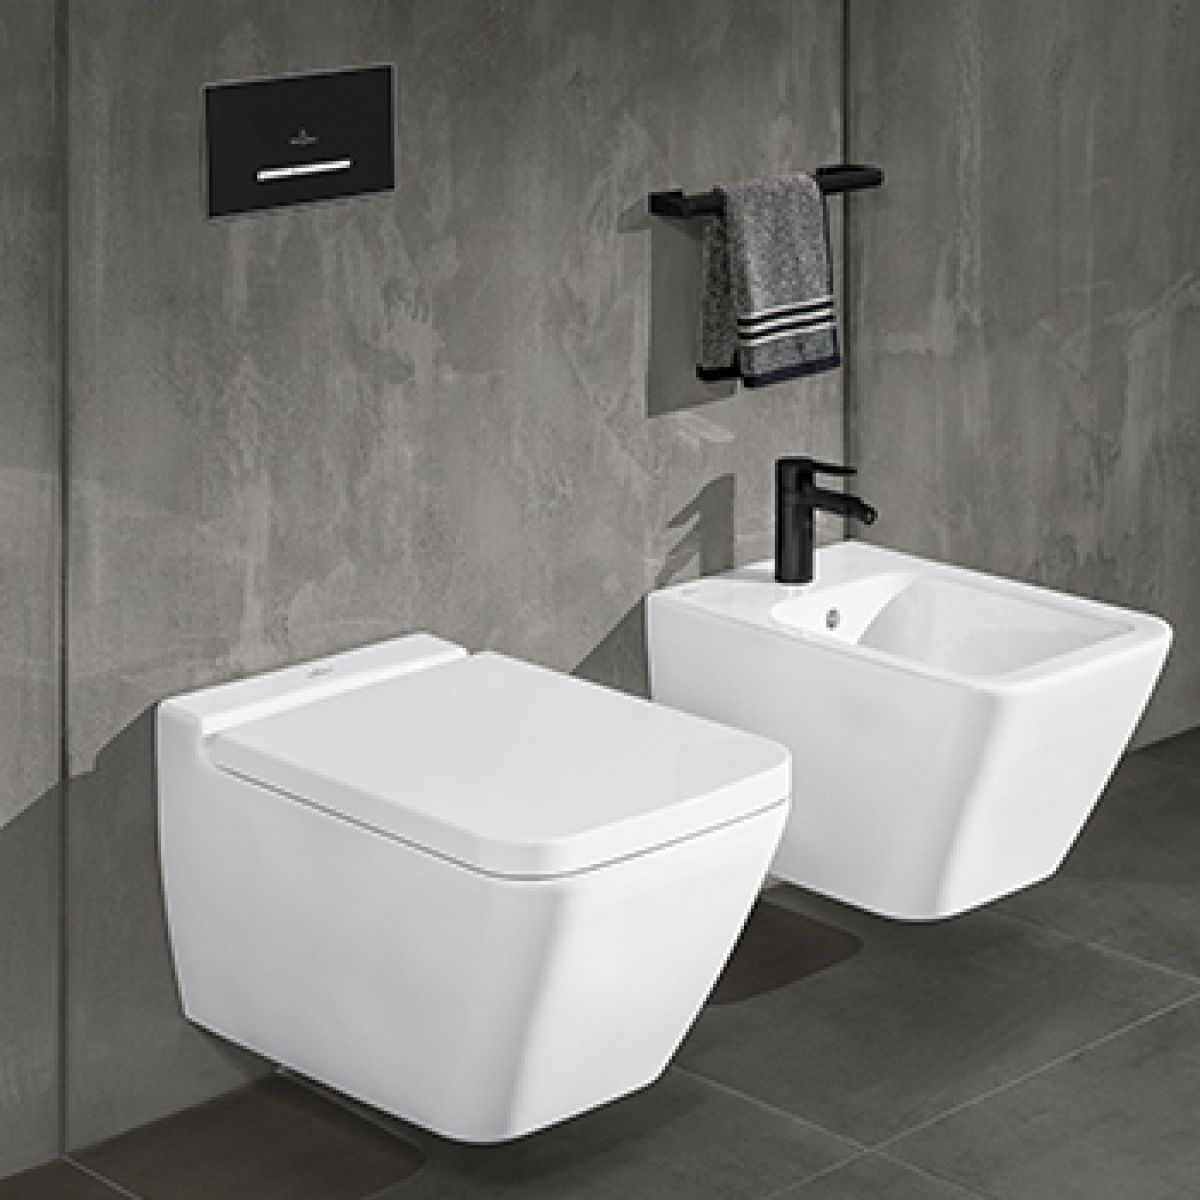 Villeroy Boch Finion Wall Mounted Toilet Rimless Toilet